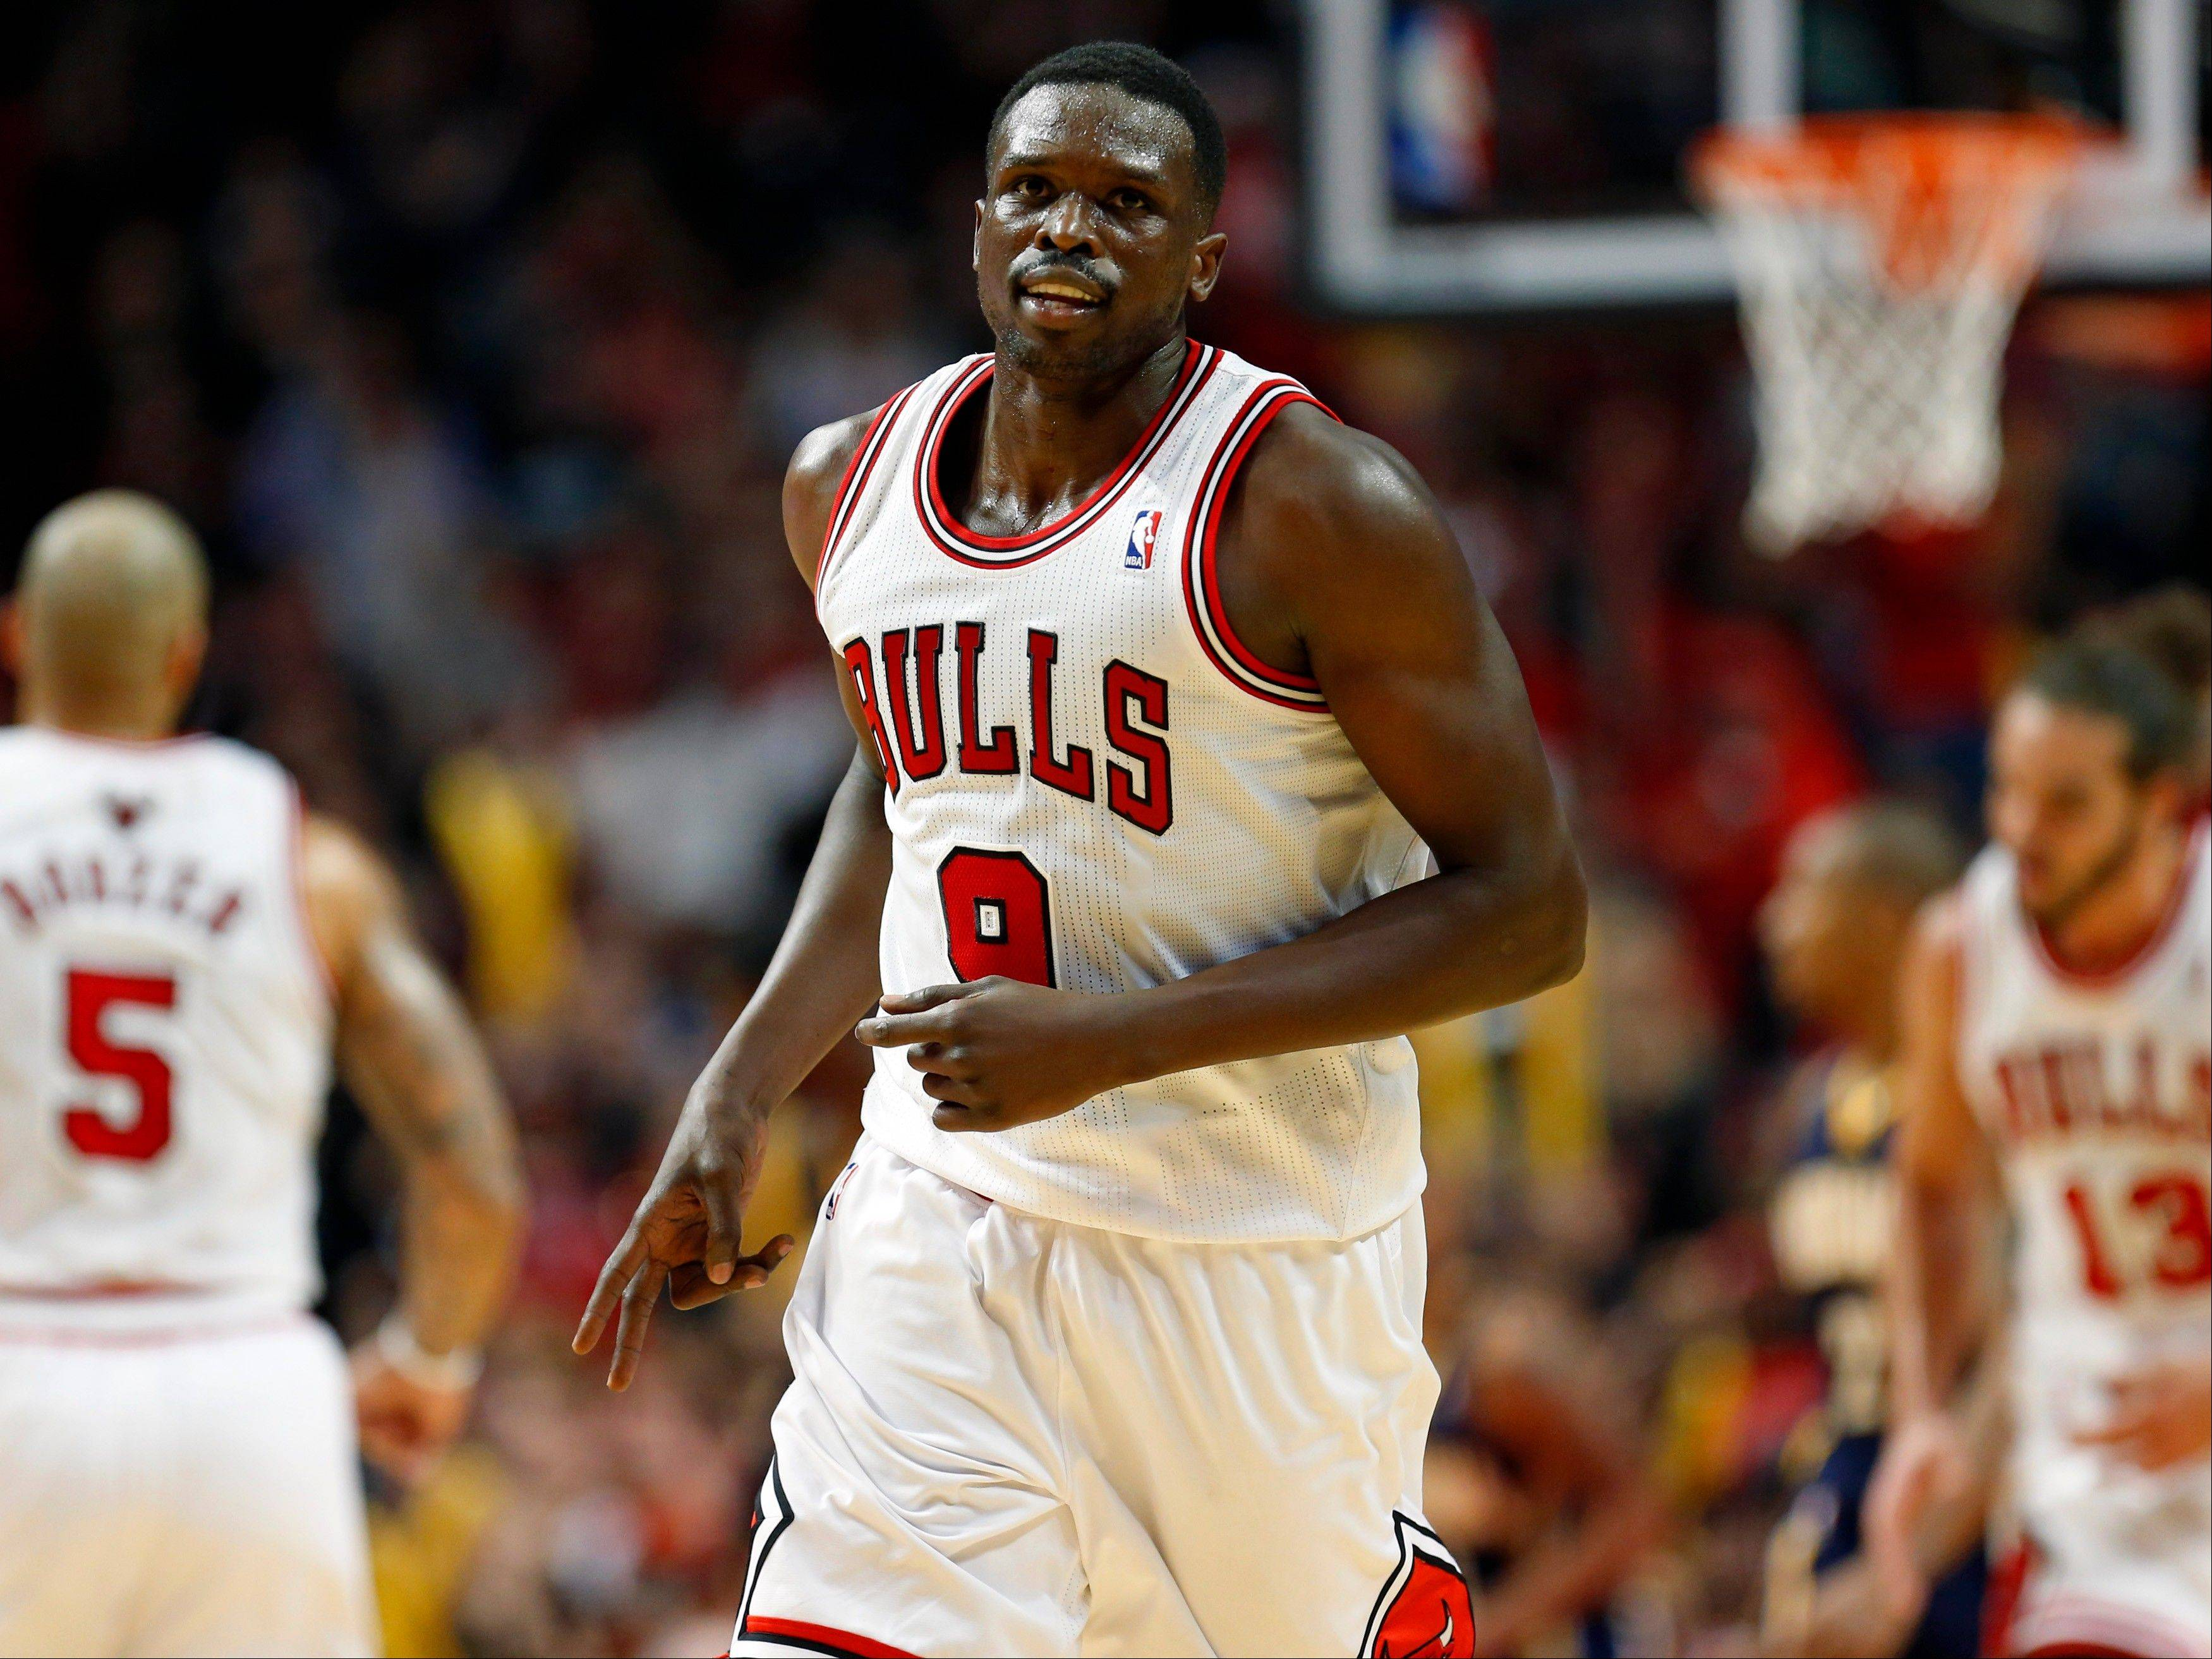 Bulls forward Luol Deng has been traded to Cleveland.